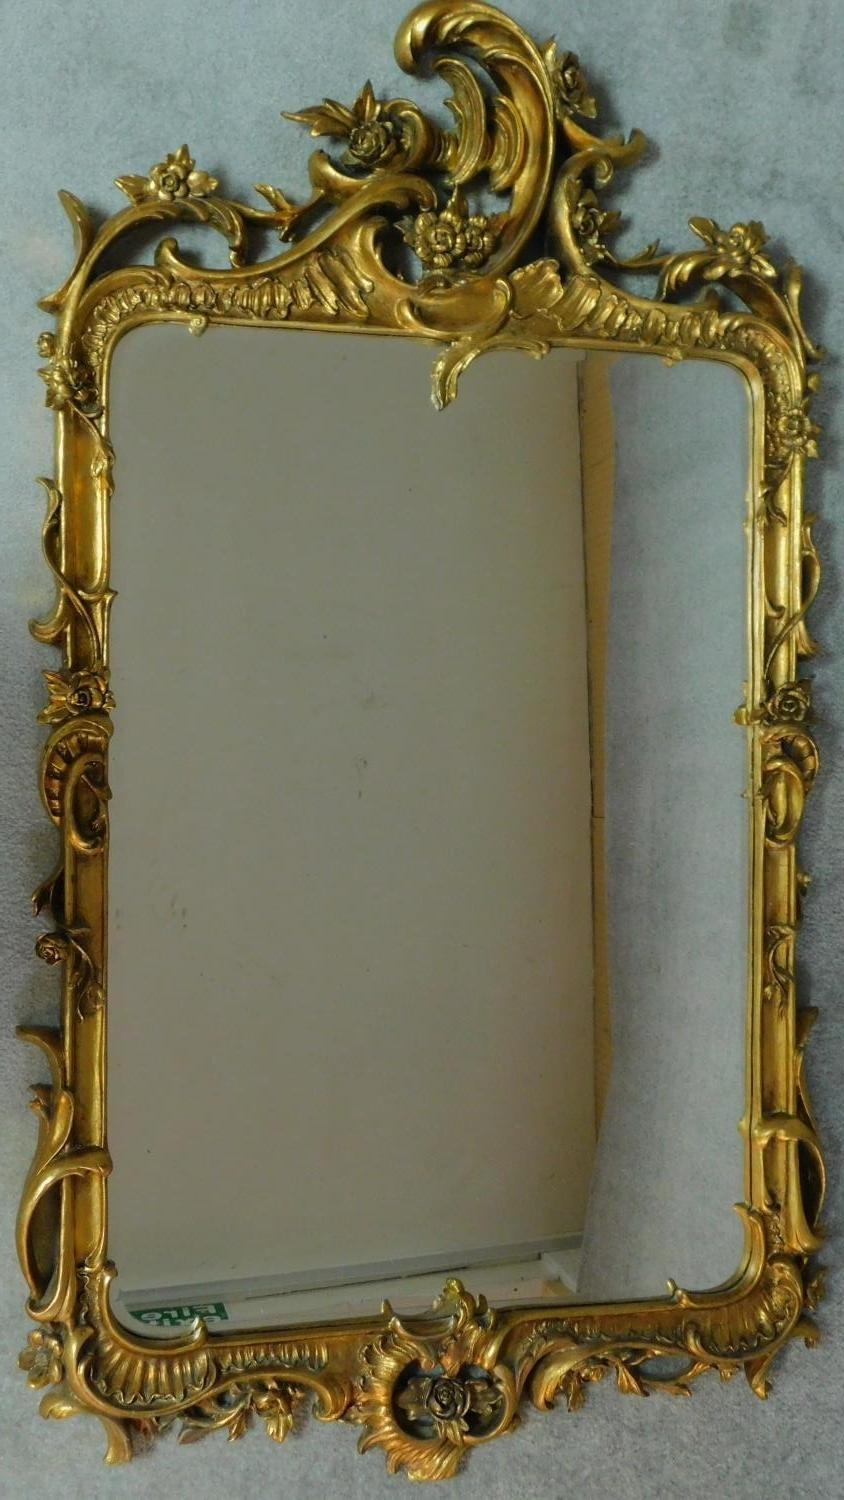 An elaborately carved giltwood rococo style wall mirror 156x85